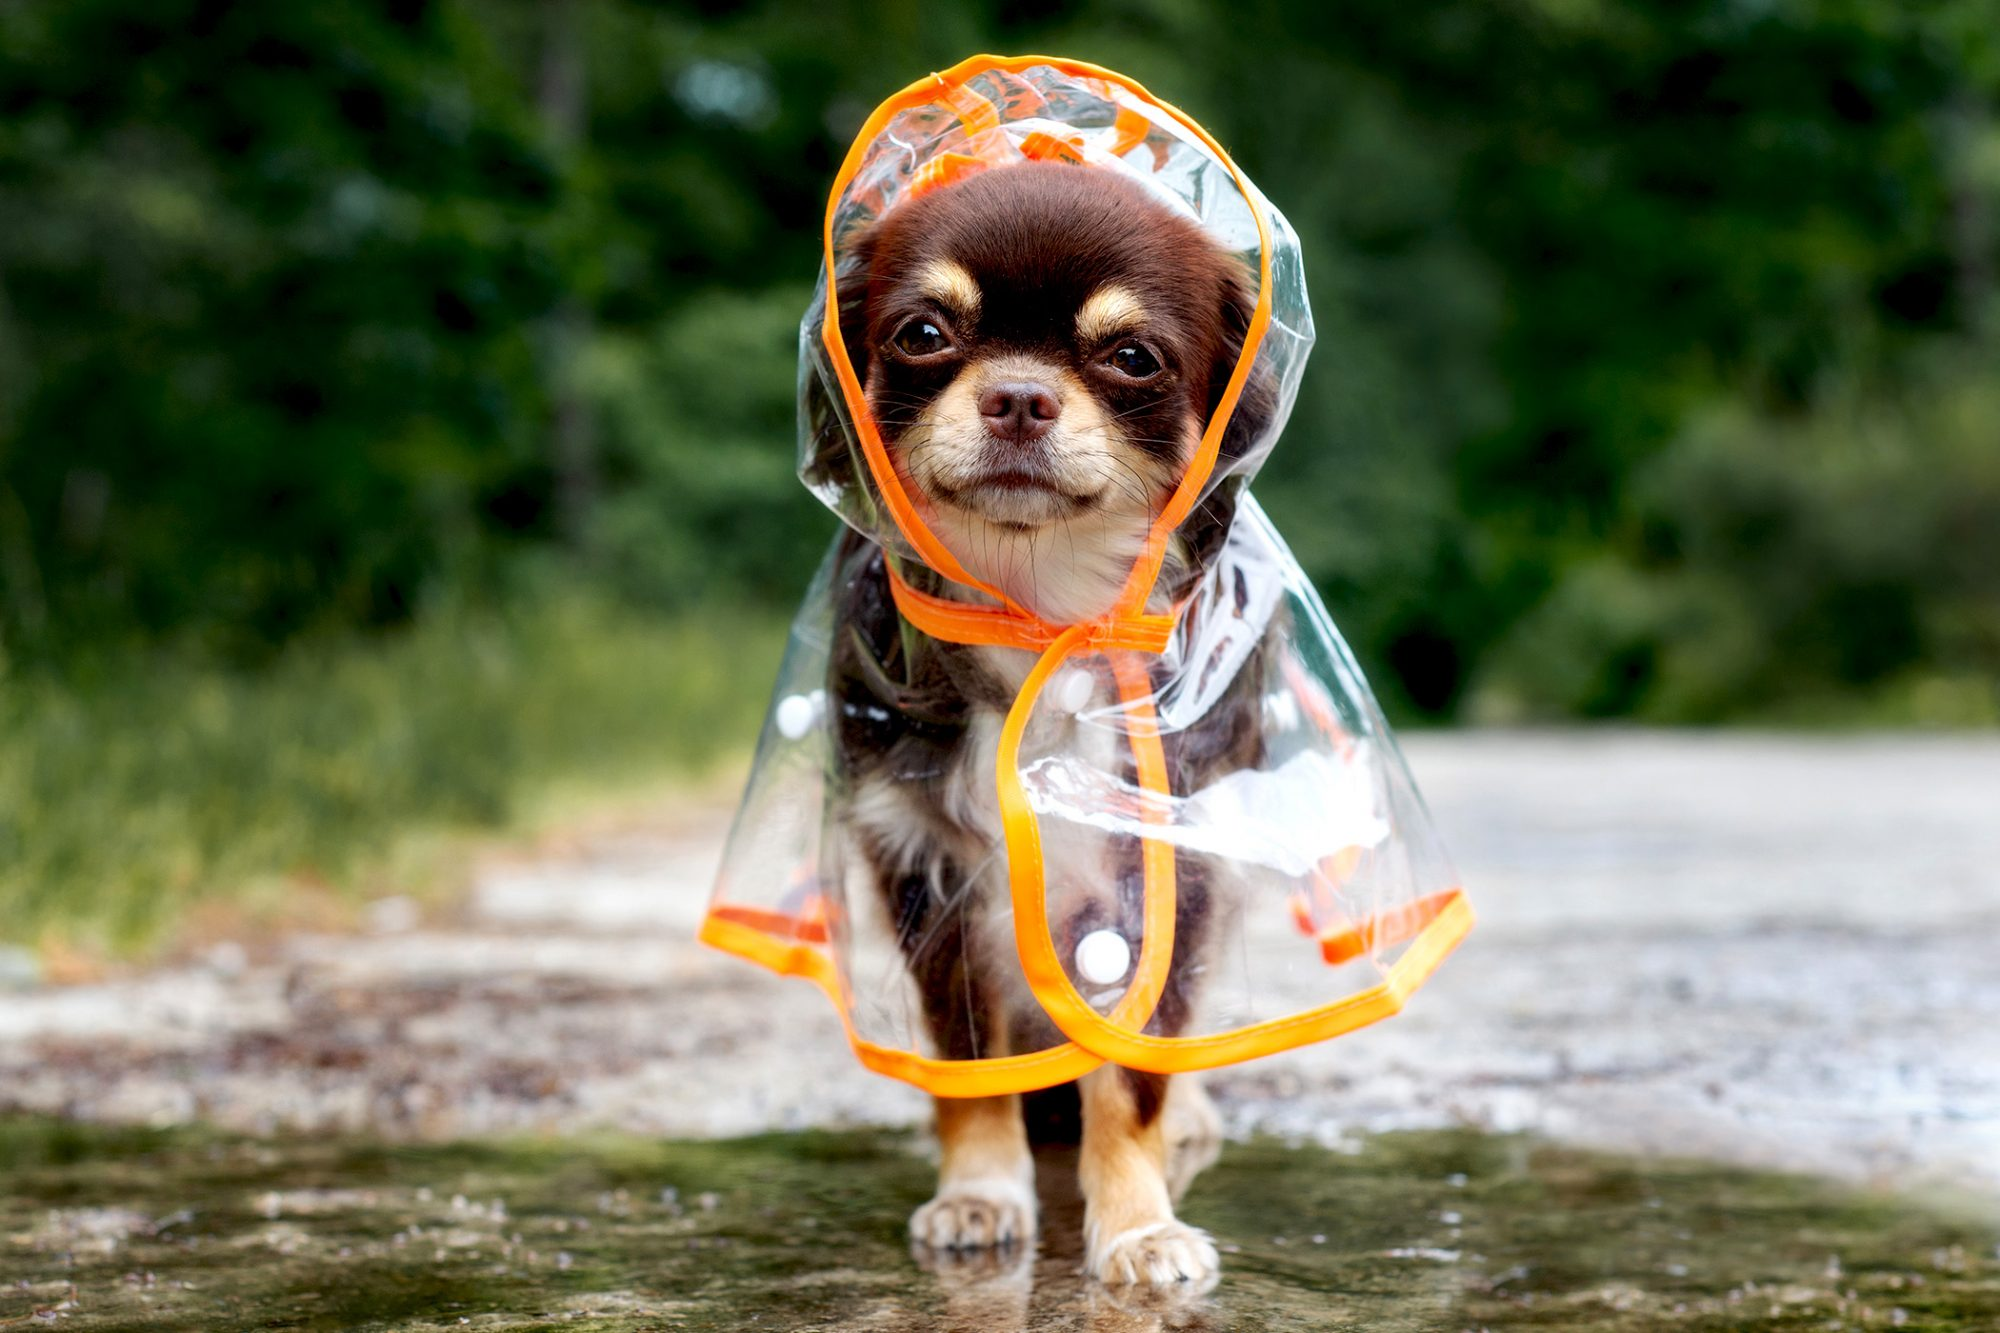 Brown and tan chihuahua wears clear and orange raincoat outside